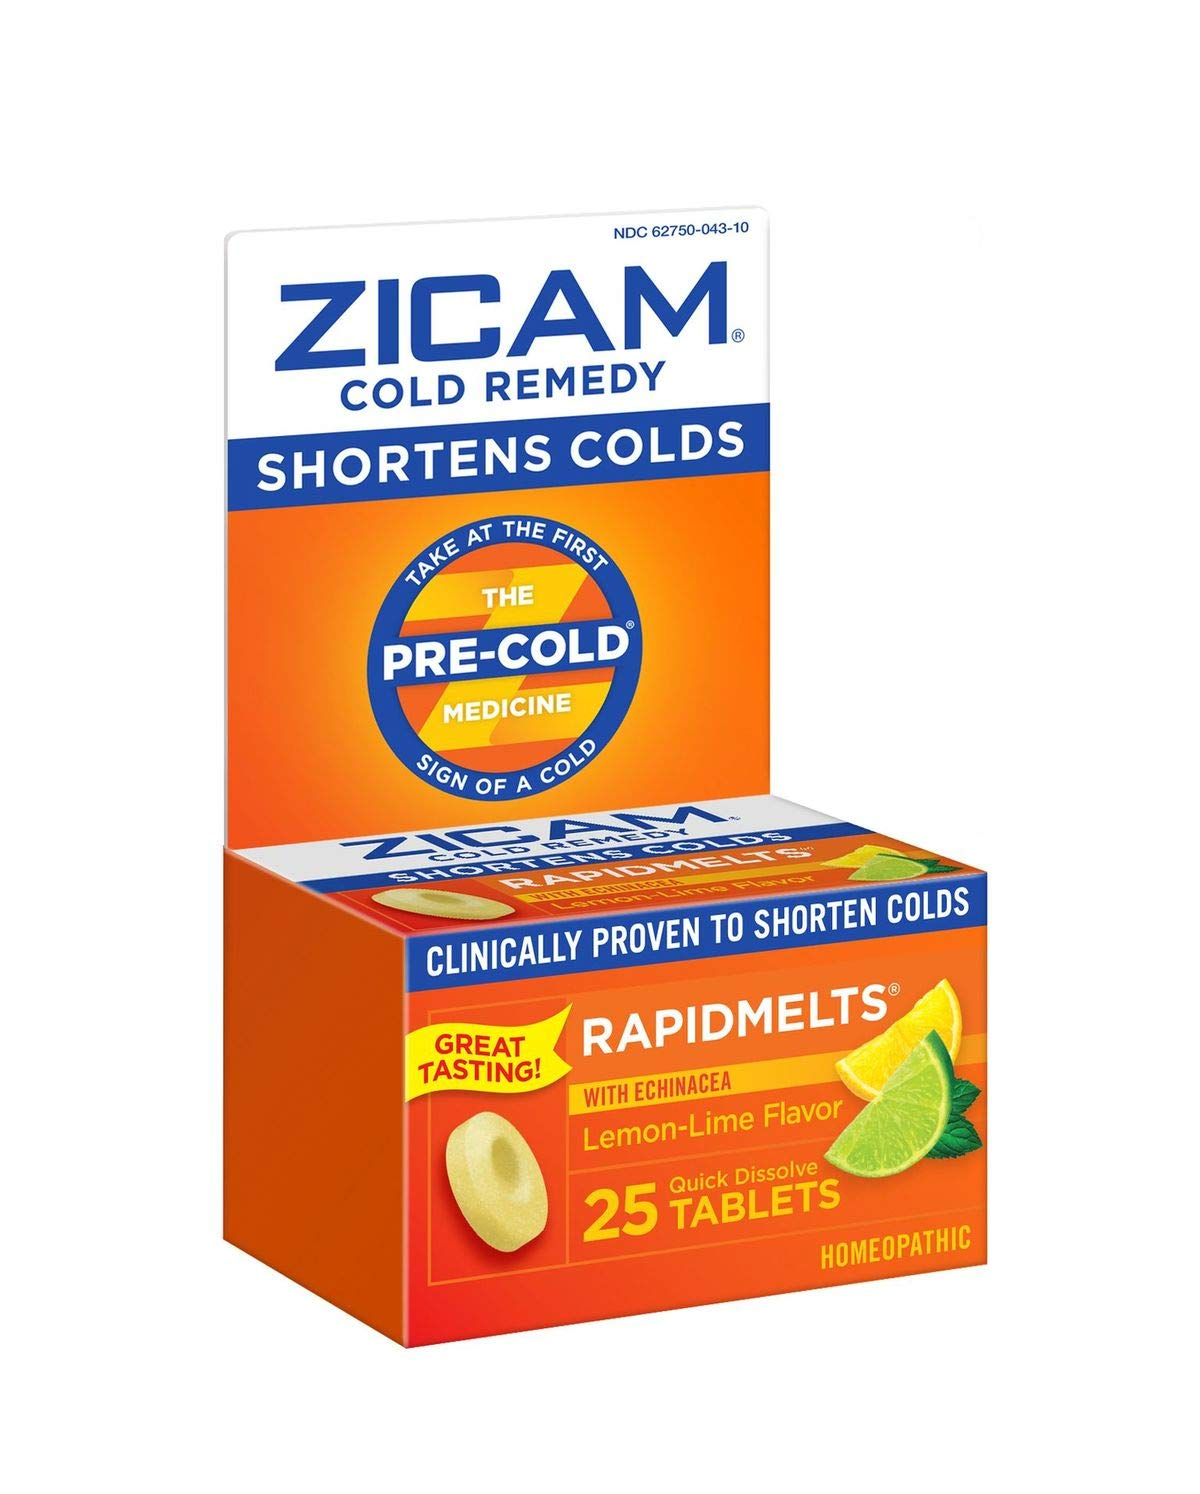 Zicam Cold Remedy Rapidmelts, Lemon-Lime with Echinacea, 25 Count (Pack of 1)